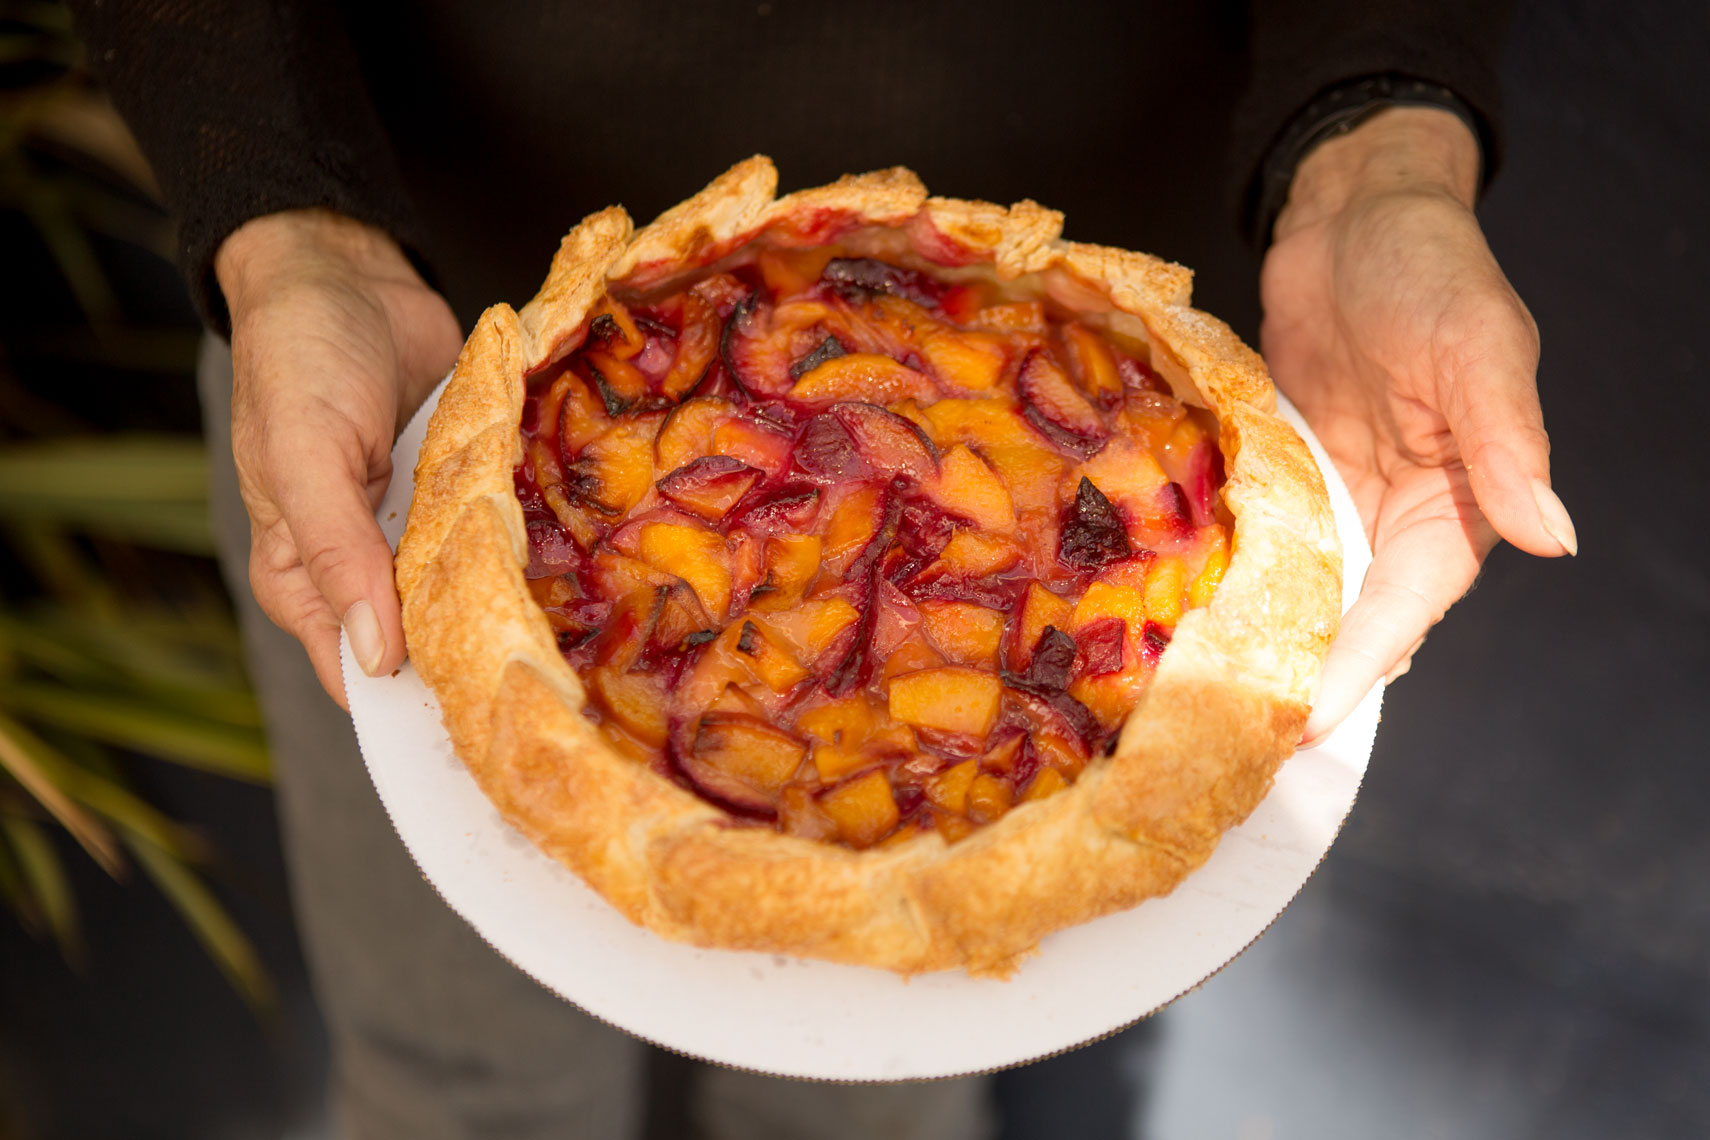 21_Food_Kris_Davidson_National_Geographic_American_Pie